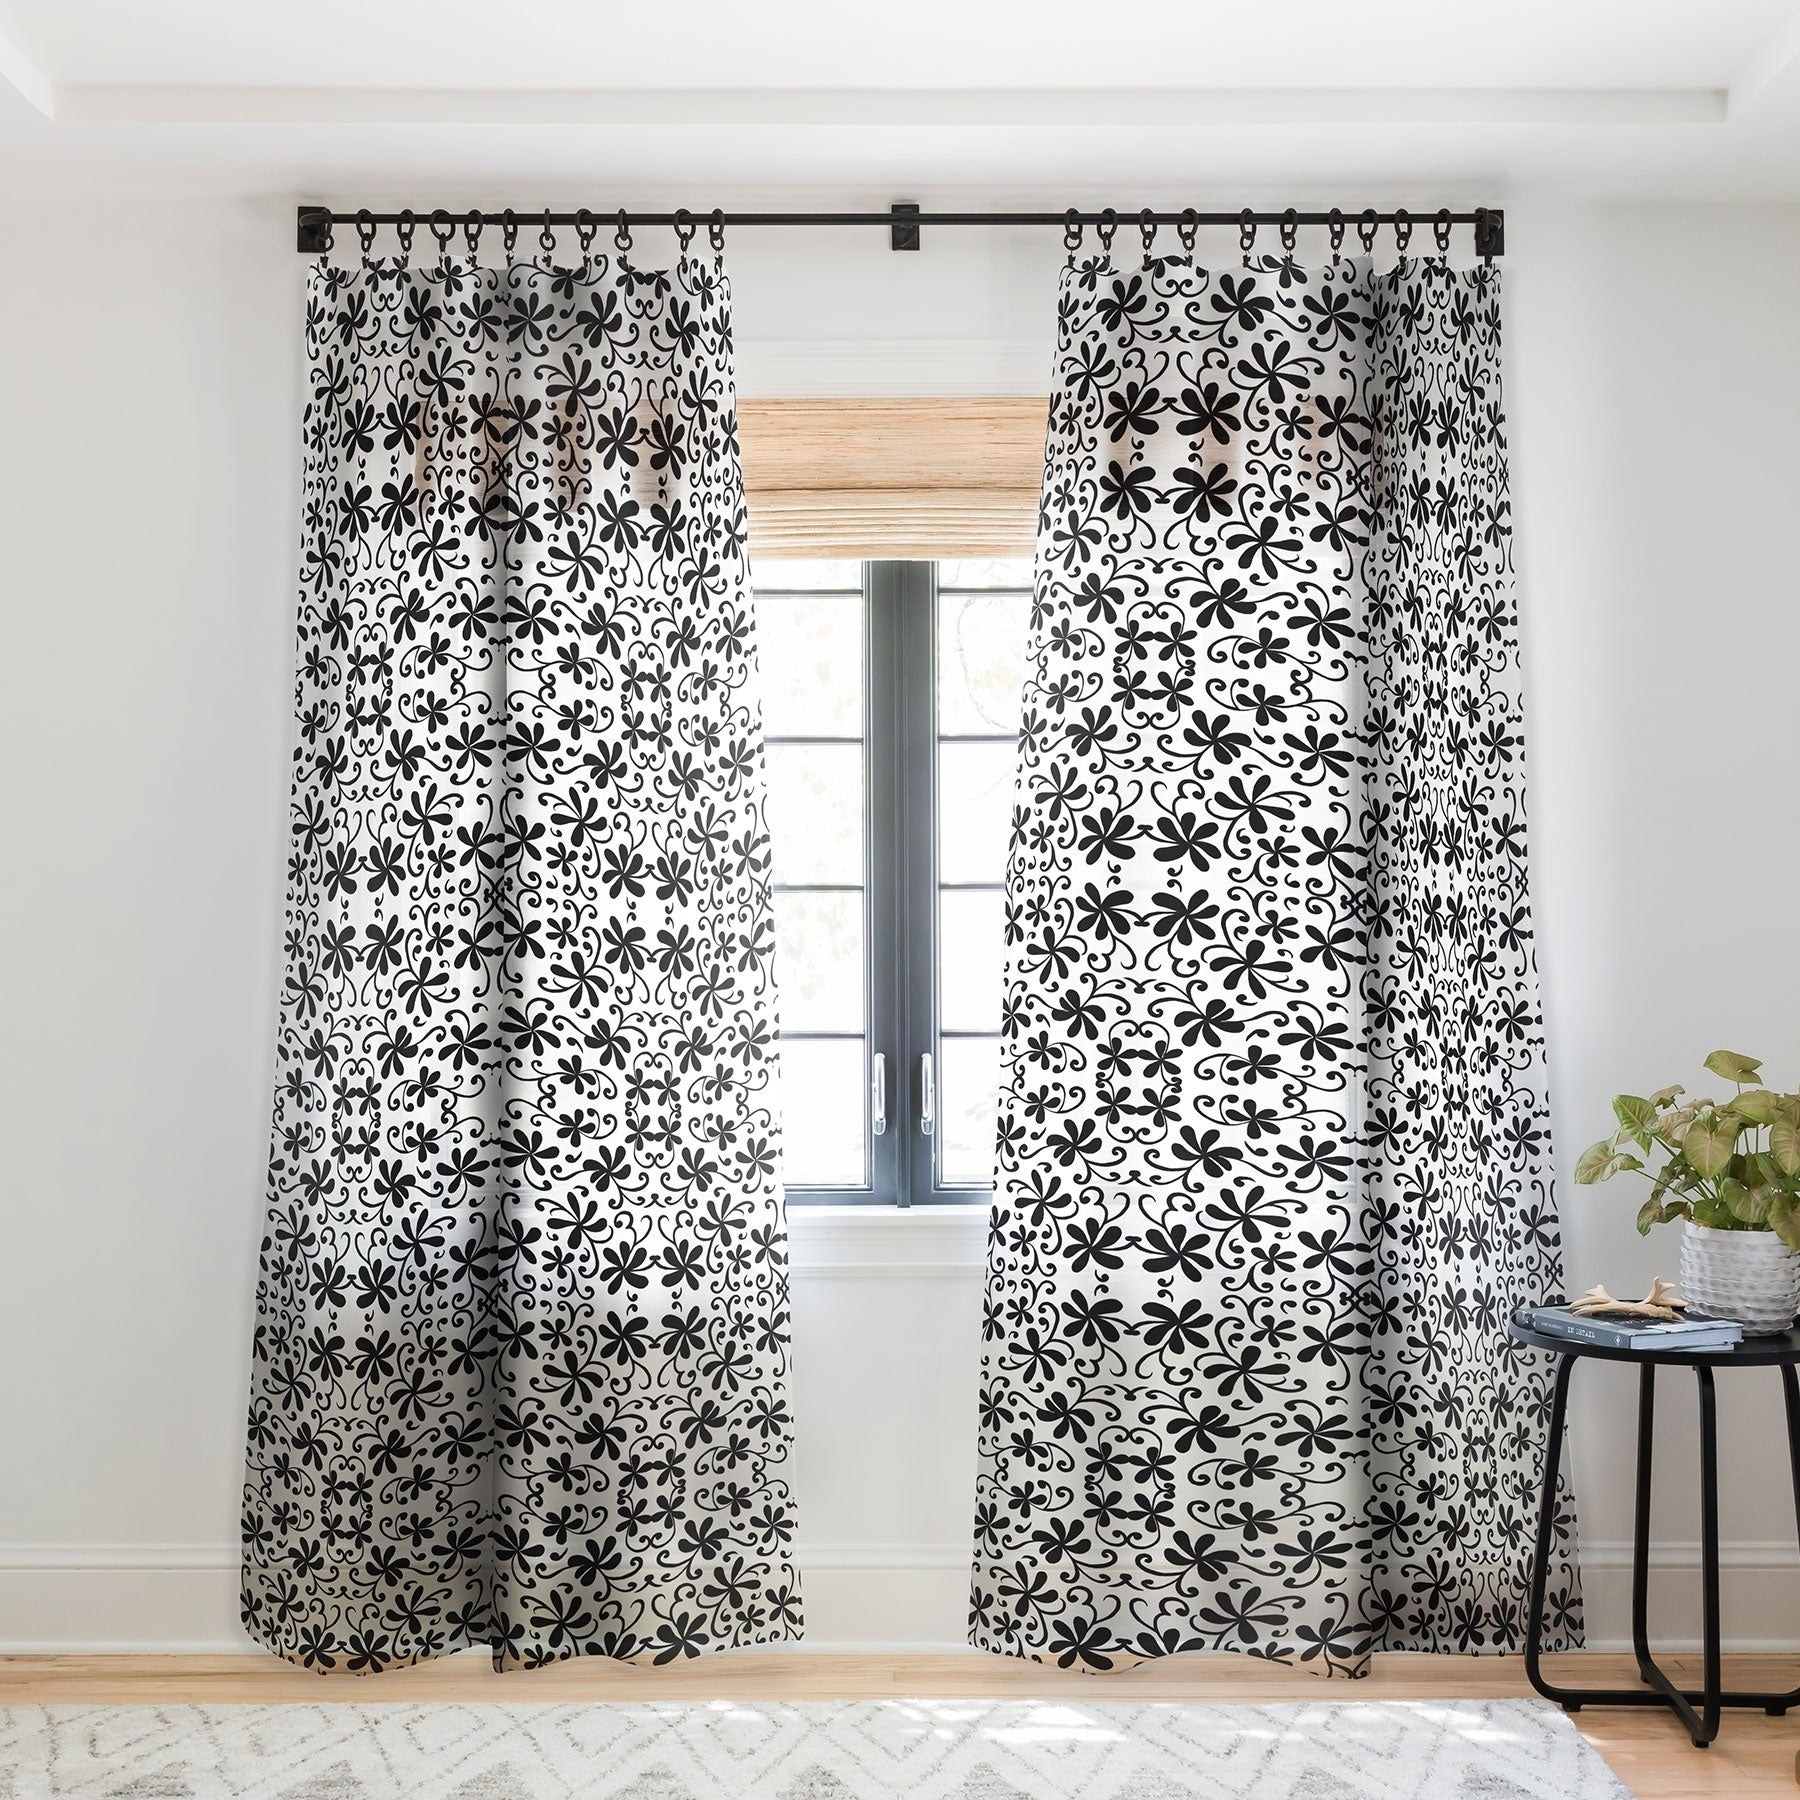 Rosie Brown Black On White Single Panel Sheer Curtain 50 X 84 On Sale Overstock 22044470